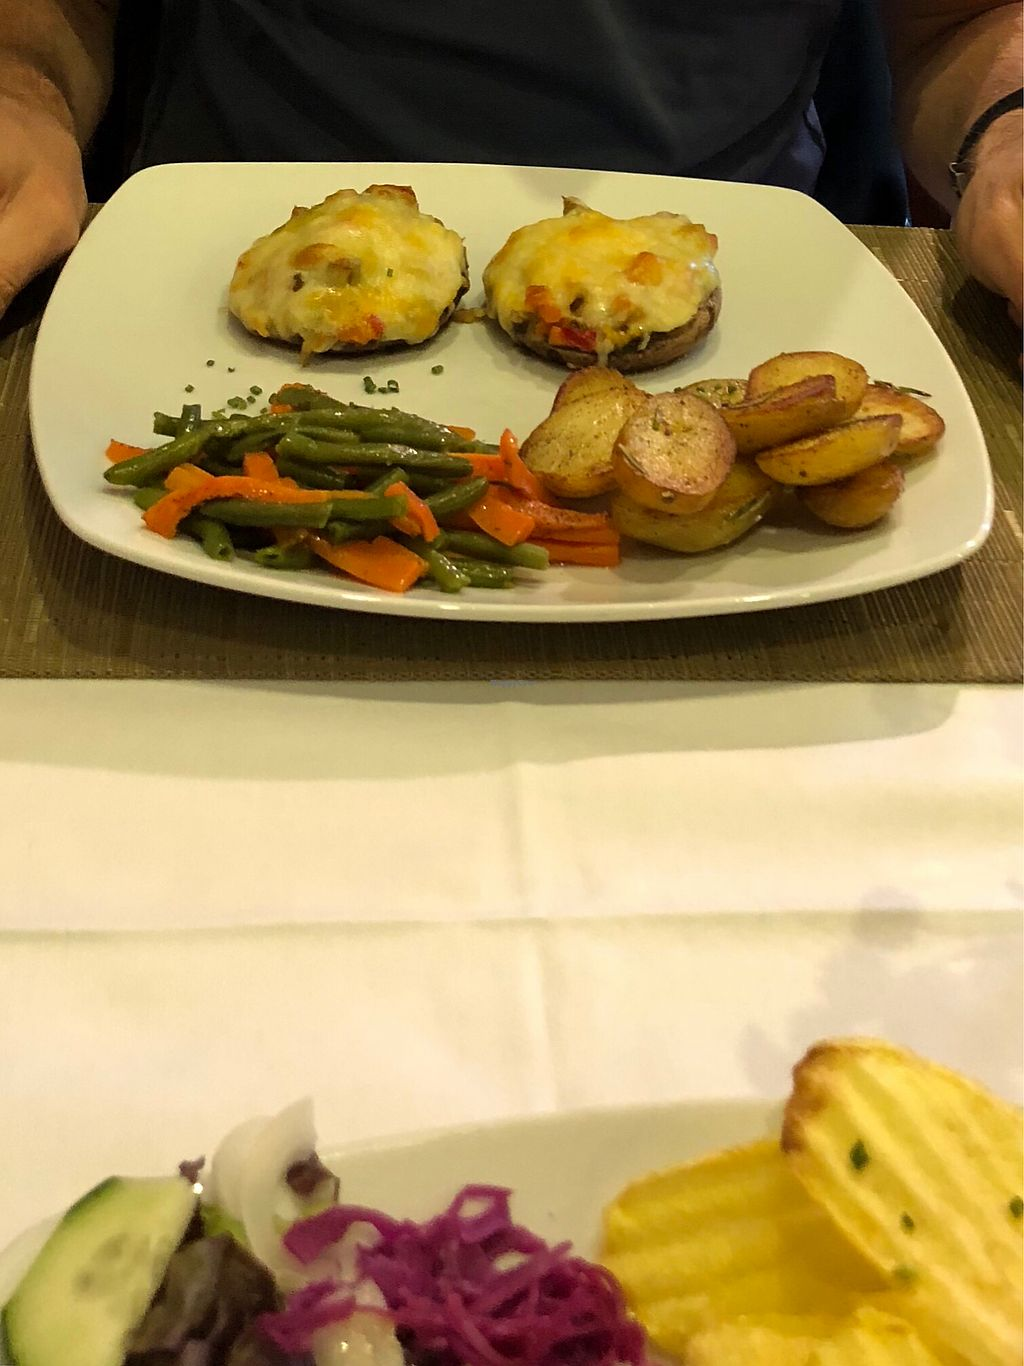 "Photo of Xisko  by <a href=""/members/profile/RainerVoit"">RainerVoit</a> <br/>Stuffed Portobellos (Vegetarian) <br/> May 12, 2018  - <a href='/contact/abuse/image/95265/398871'>Report</a>"